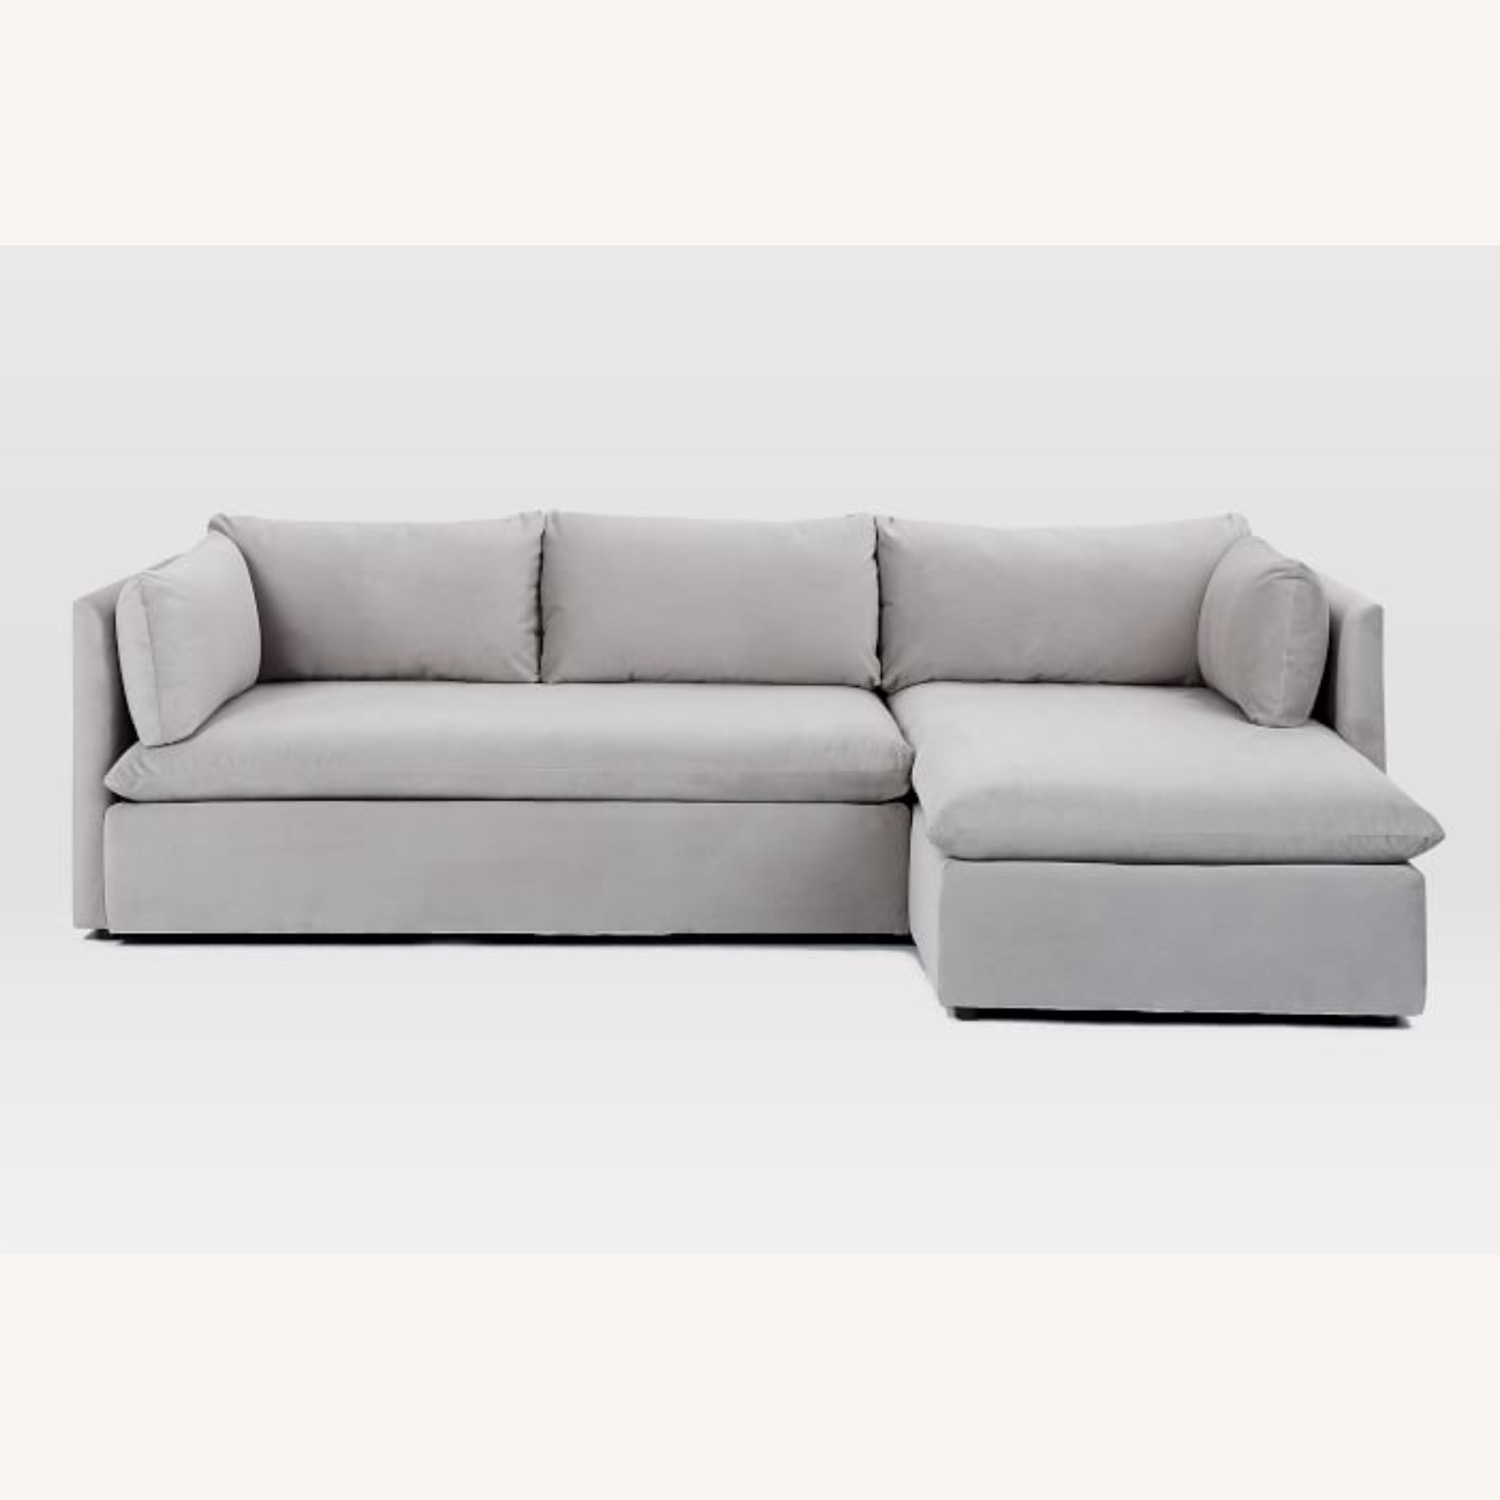 West Elm Shelter Sectional Sofa Dove Gray - image-9